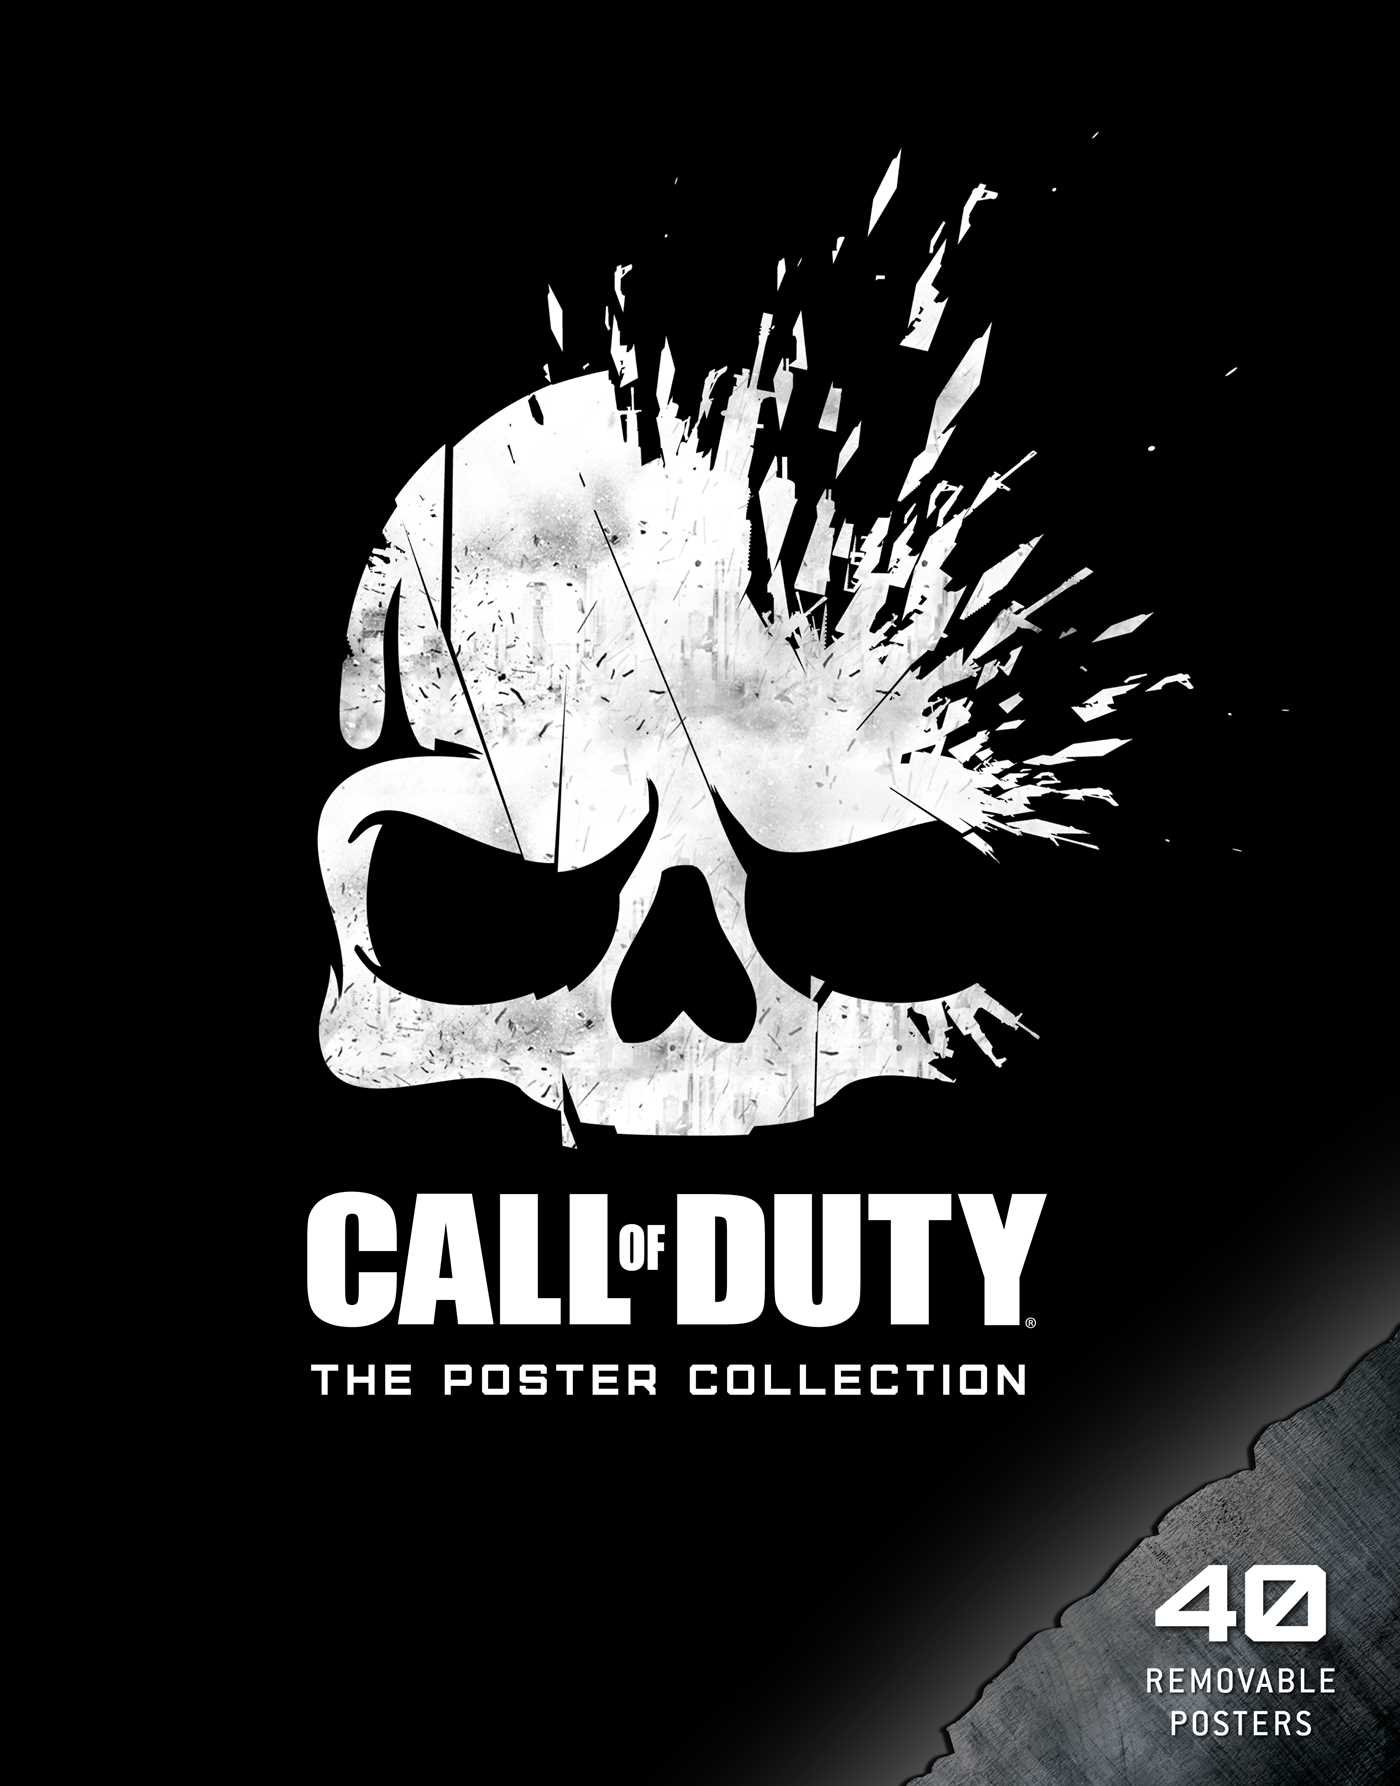 Call Of Duty The Poster Collection Insights Poster Collections